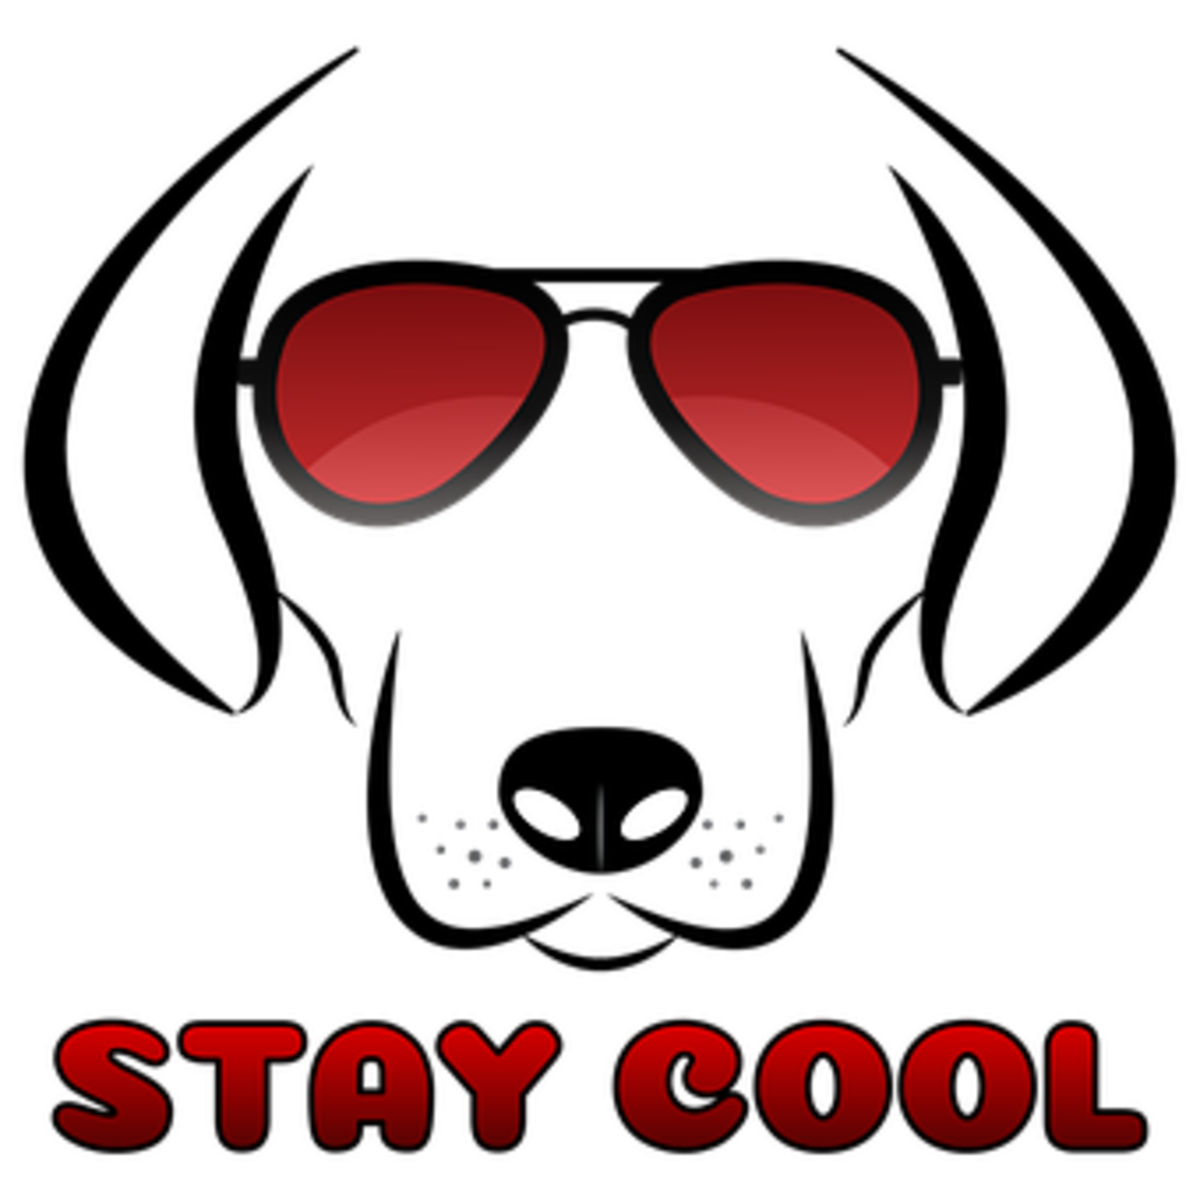 the-coolest-word-cool-as-expressed-in-english-idioms-and-sayings